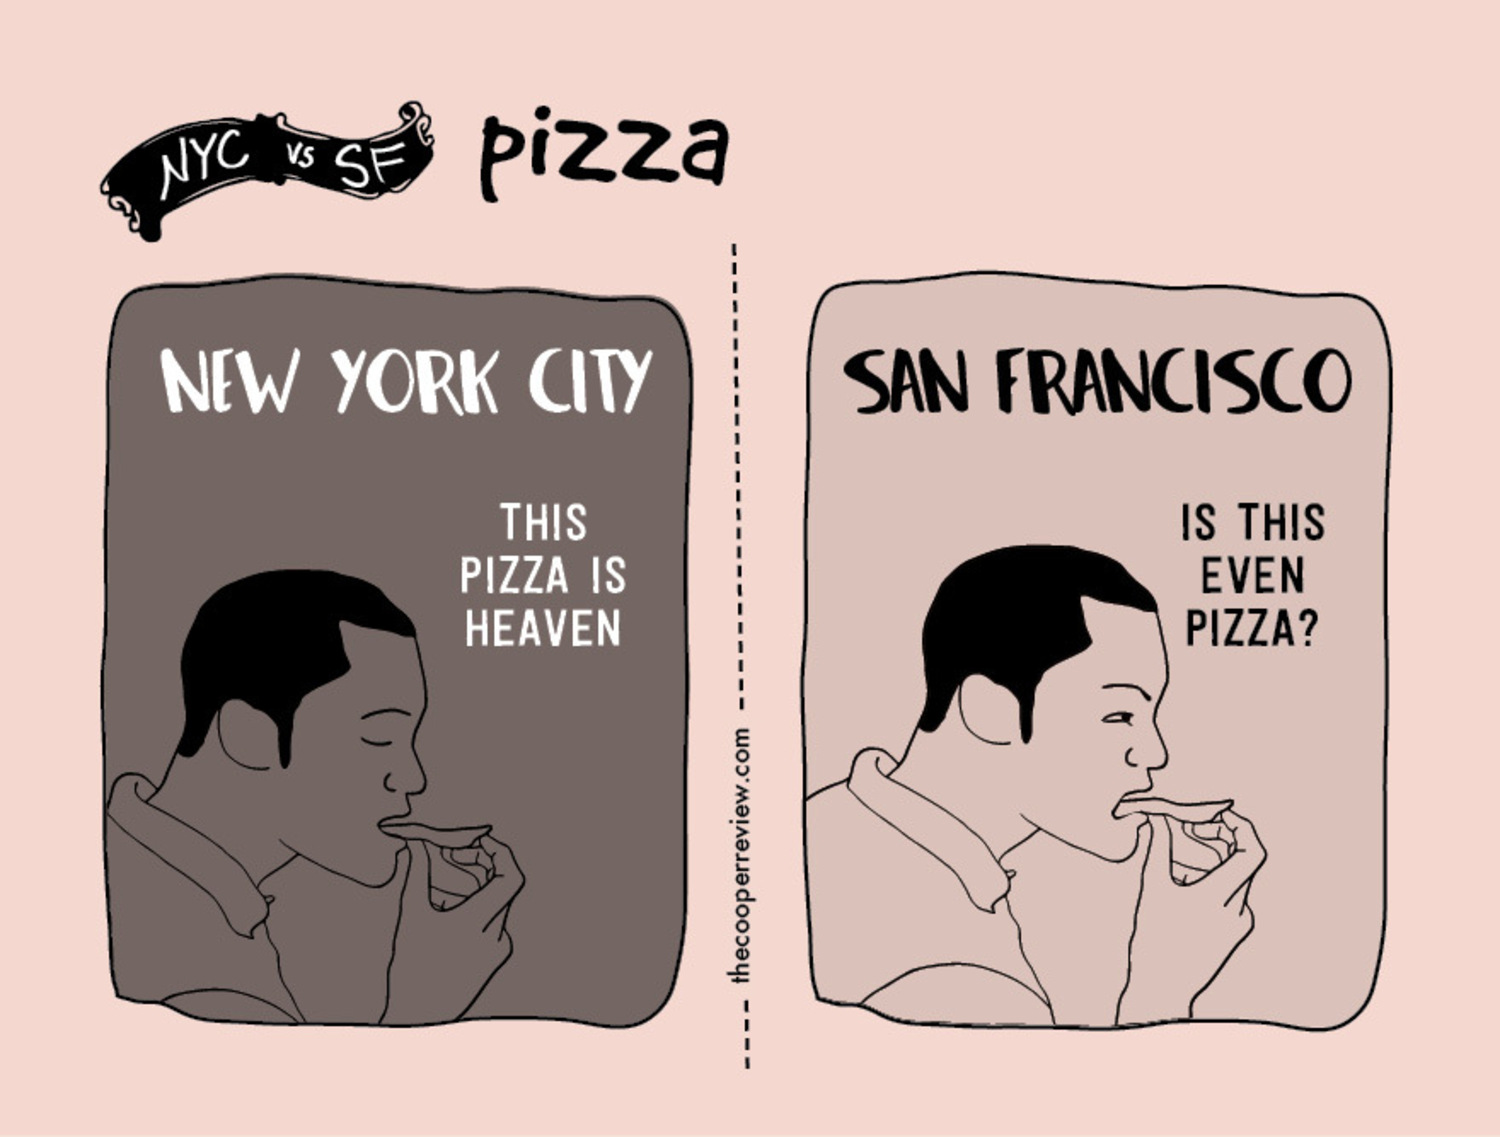 The Difference Between Living in New York City and San Francisco